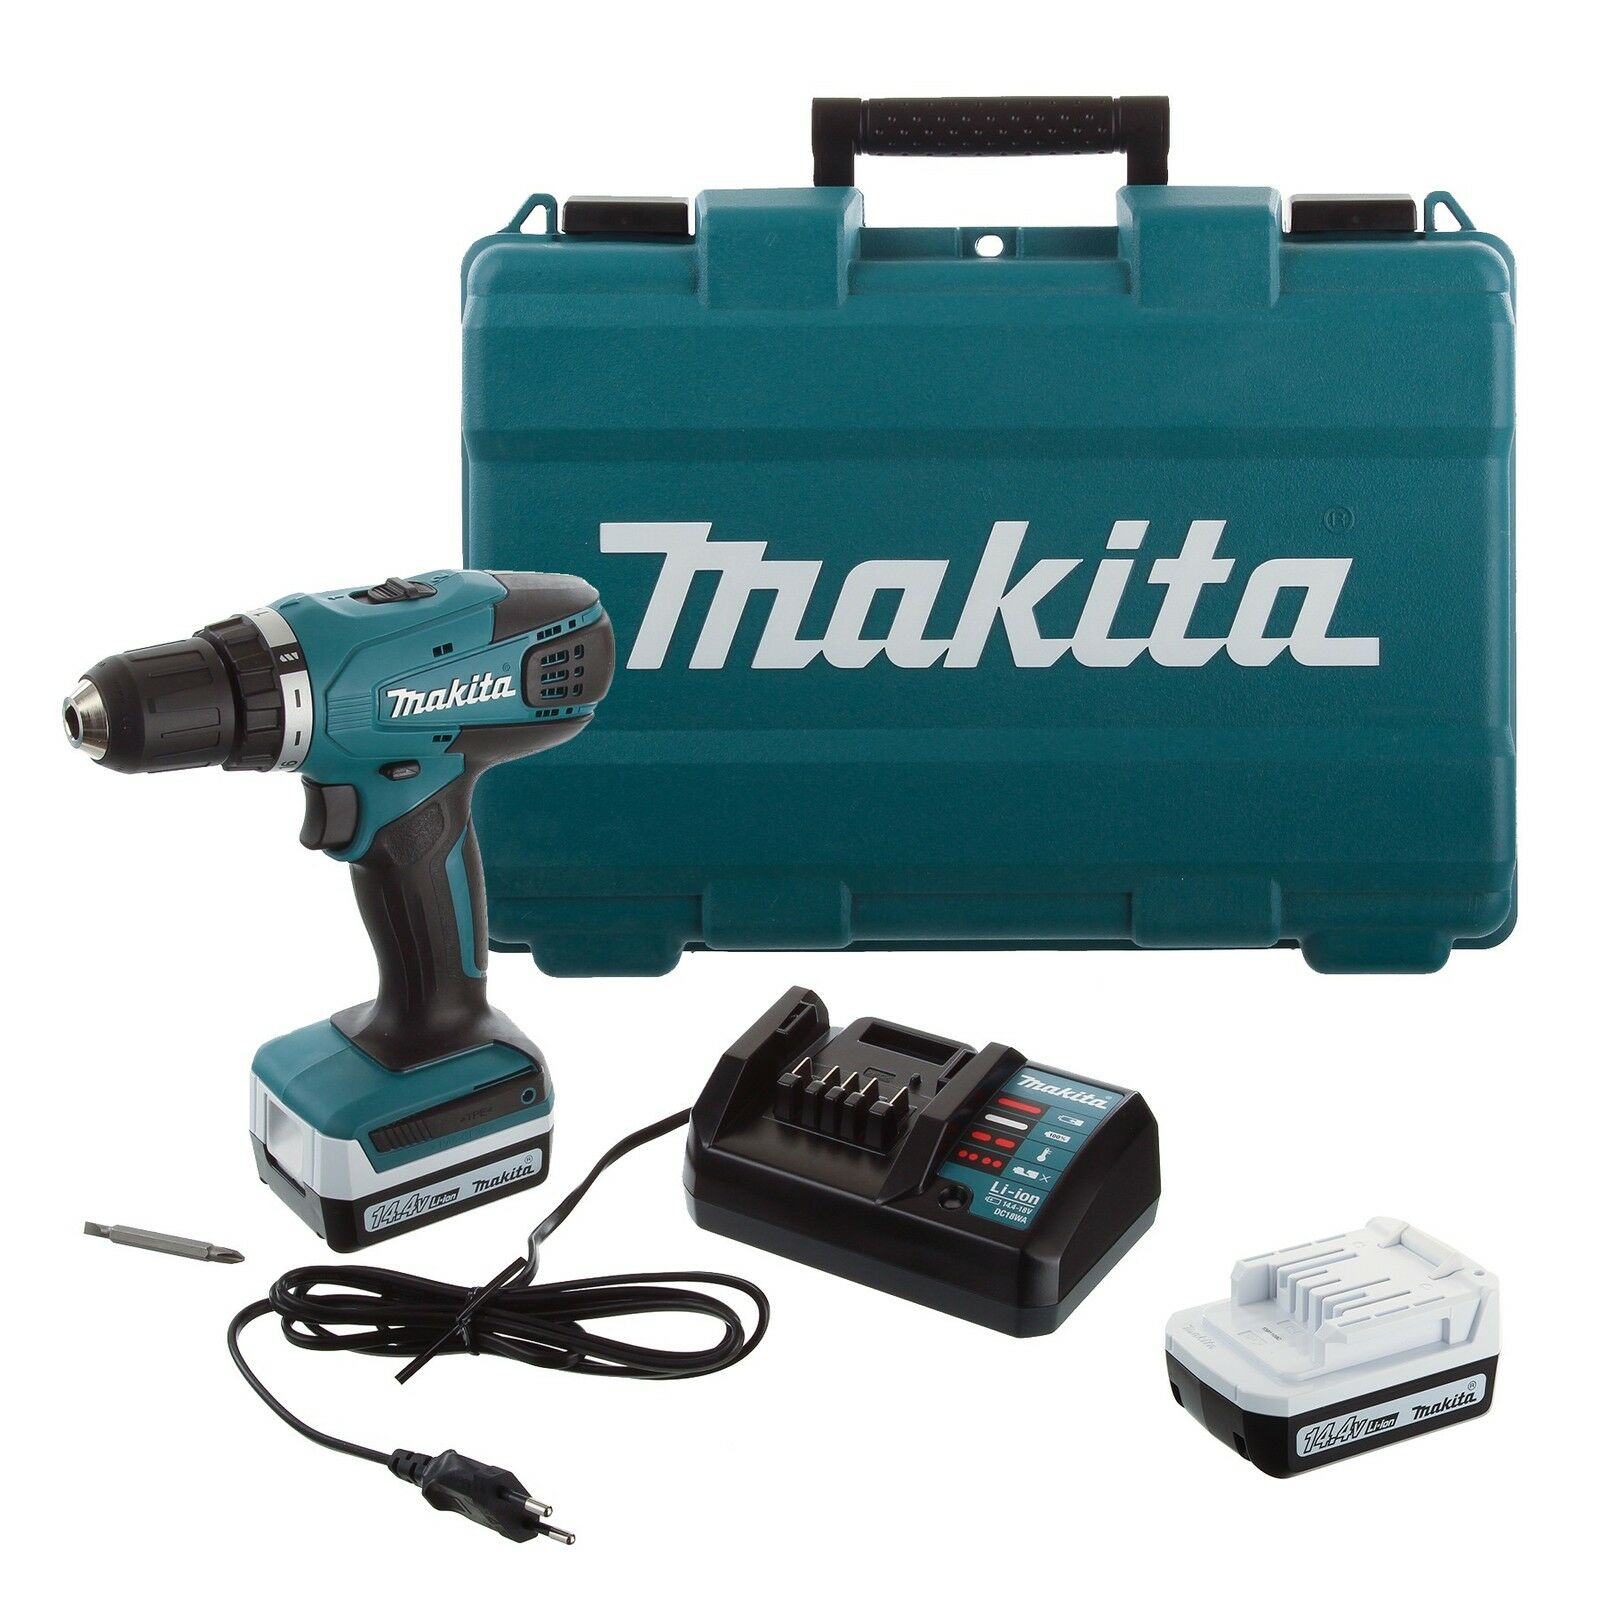 makita akku bohrschrauber bohrmaschine 2x batterien mit koffer 14 4 v eur 132 95. Black Bedroom Furniture Sets. Home Design Ideas